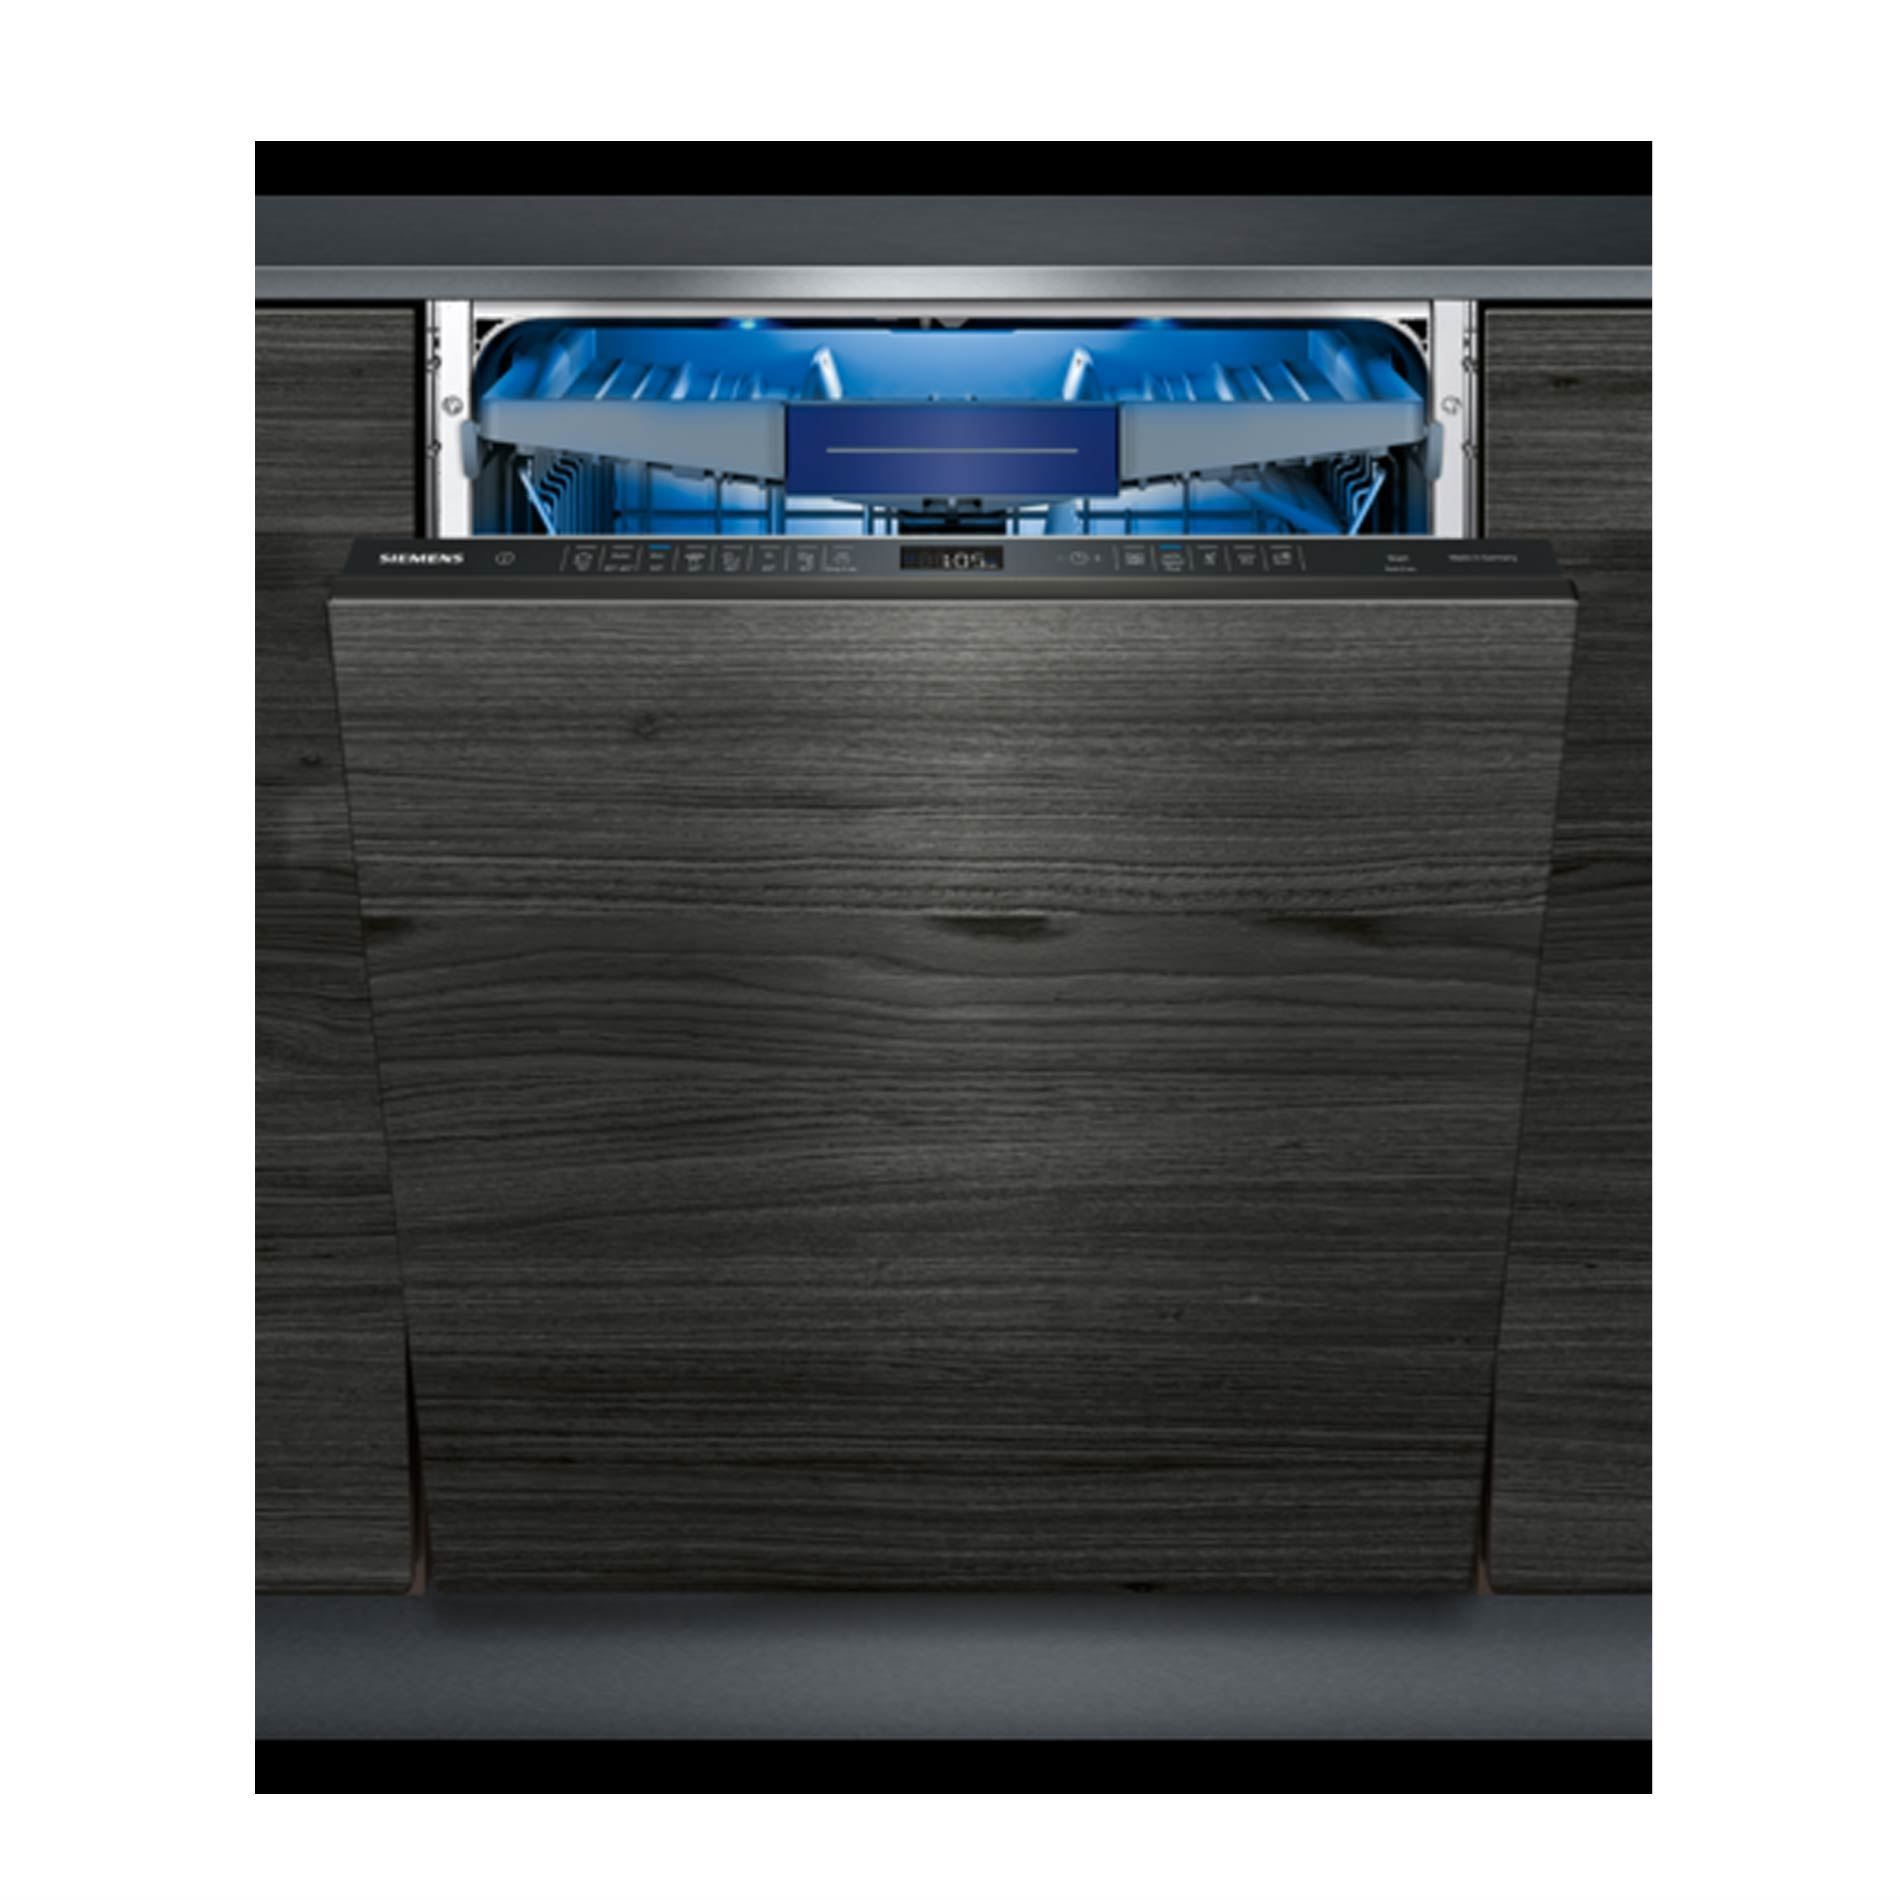 Picture of SN658D01MG Fully Integrated Dishwasher